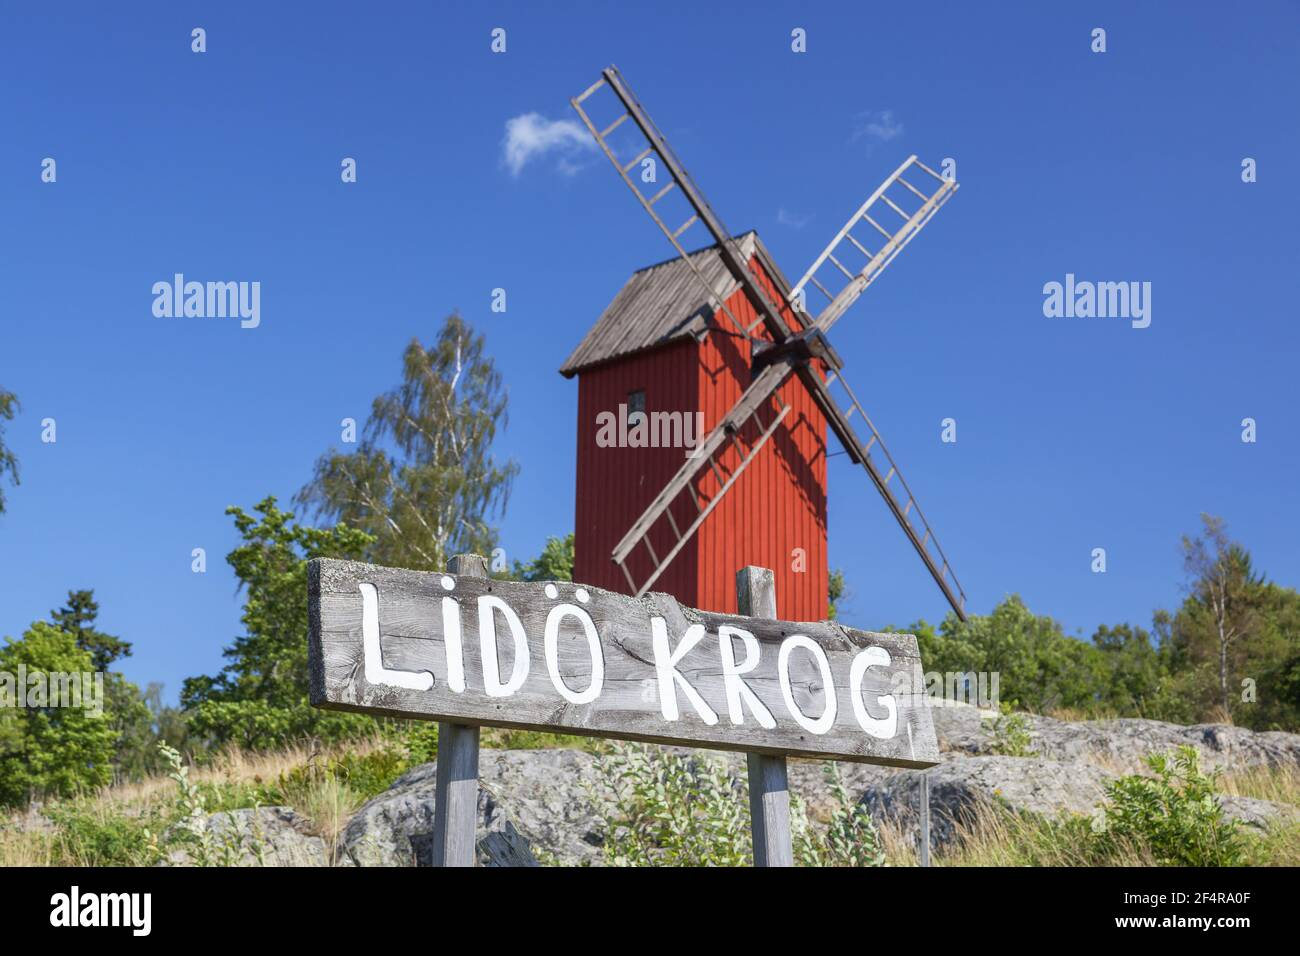 geography / travel, Sweden, Stockholm laen, Stockholm skaergård, red post mill in front of the Lido Kr, Additional-Rights-Clearance-Info-Not-Available Stock Photo